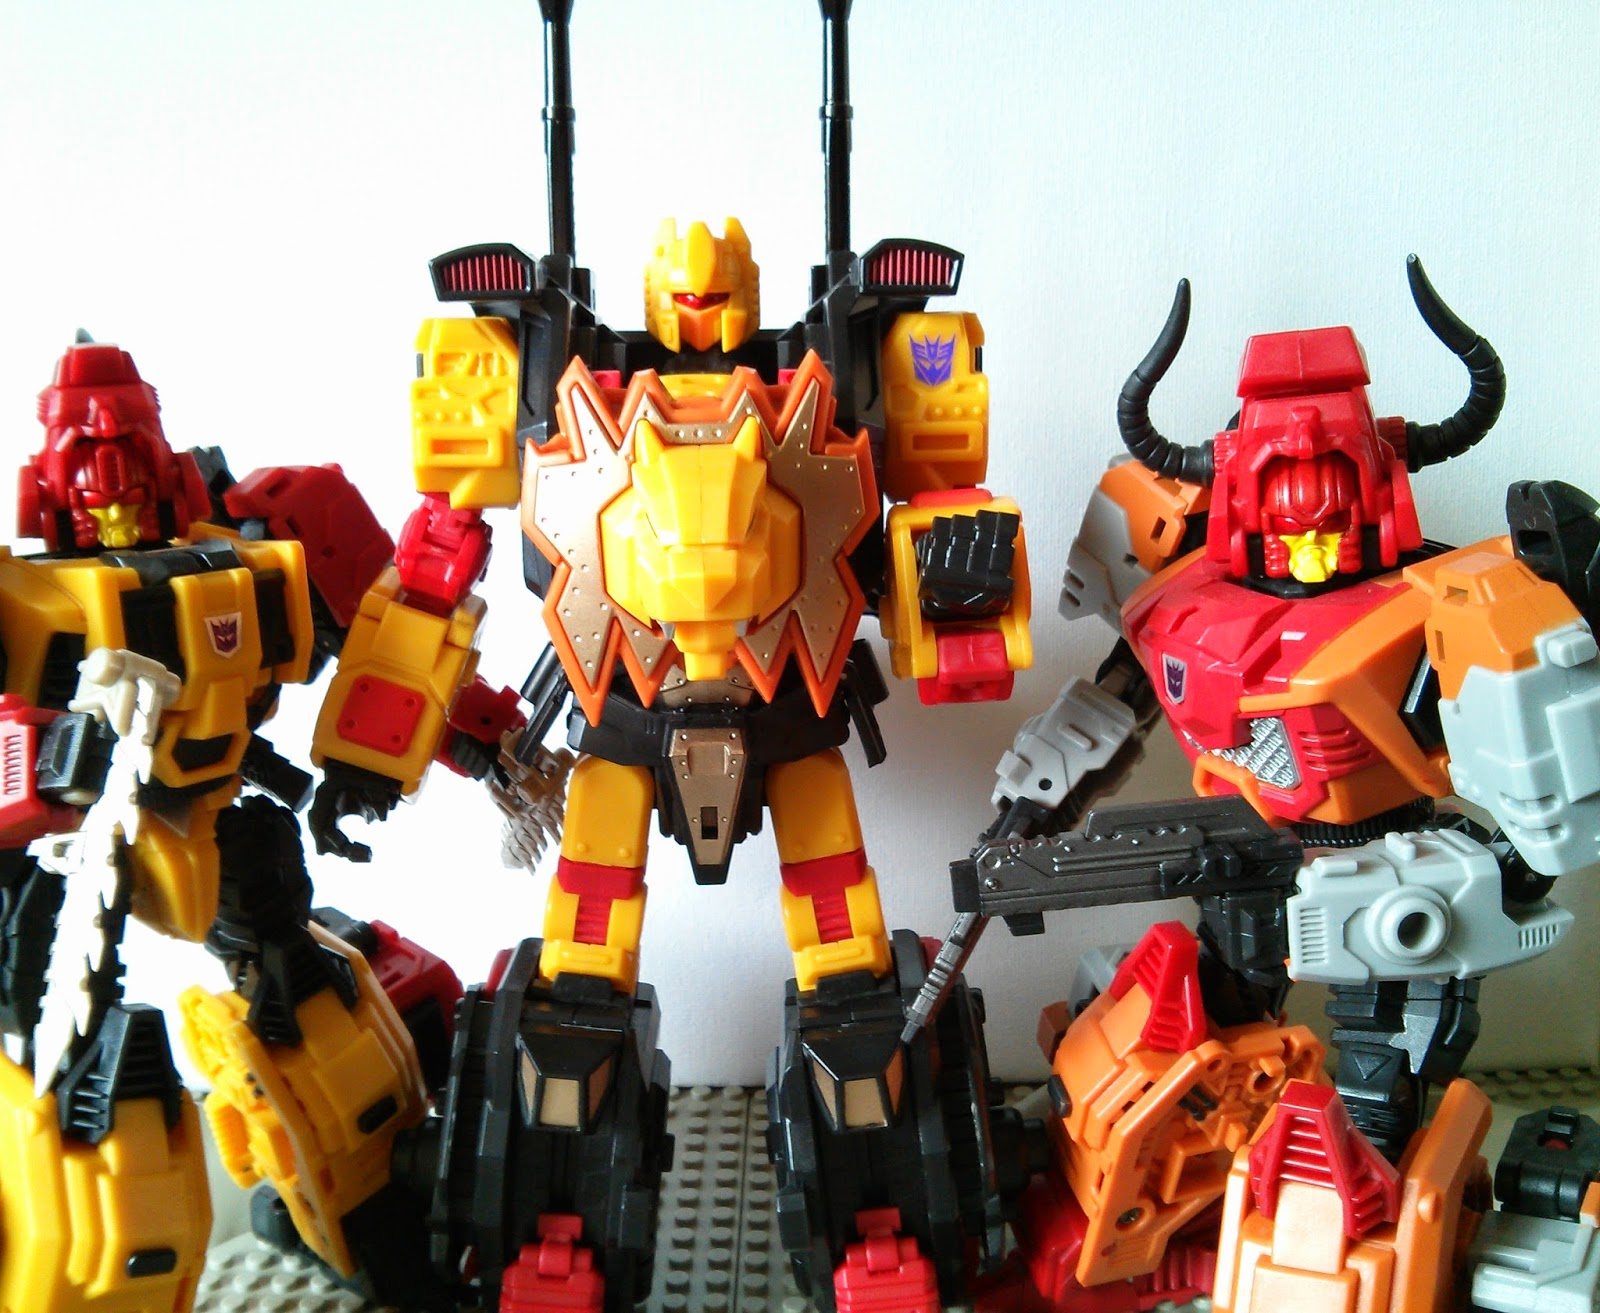 3 OF mmc's feral rex members